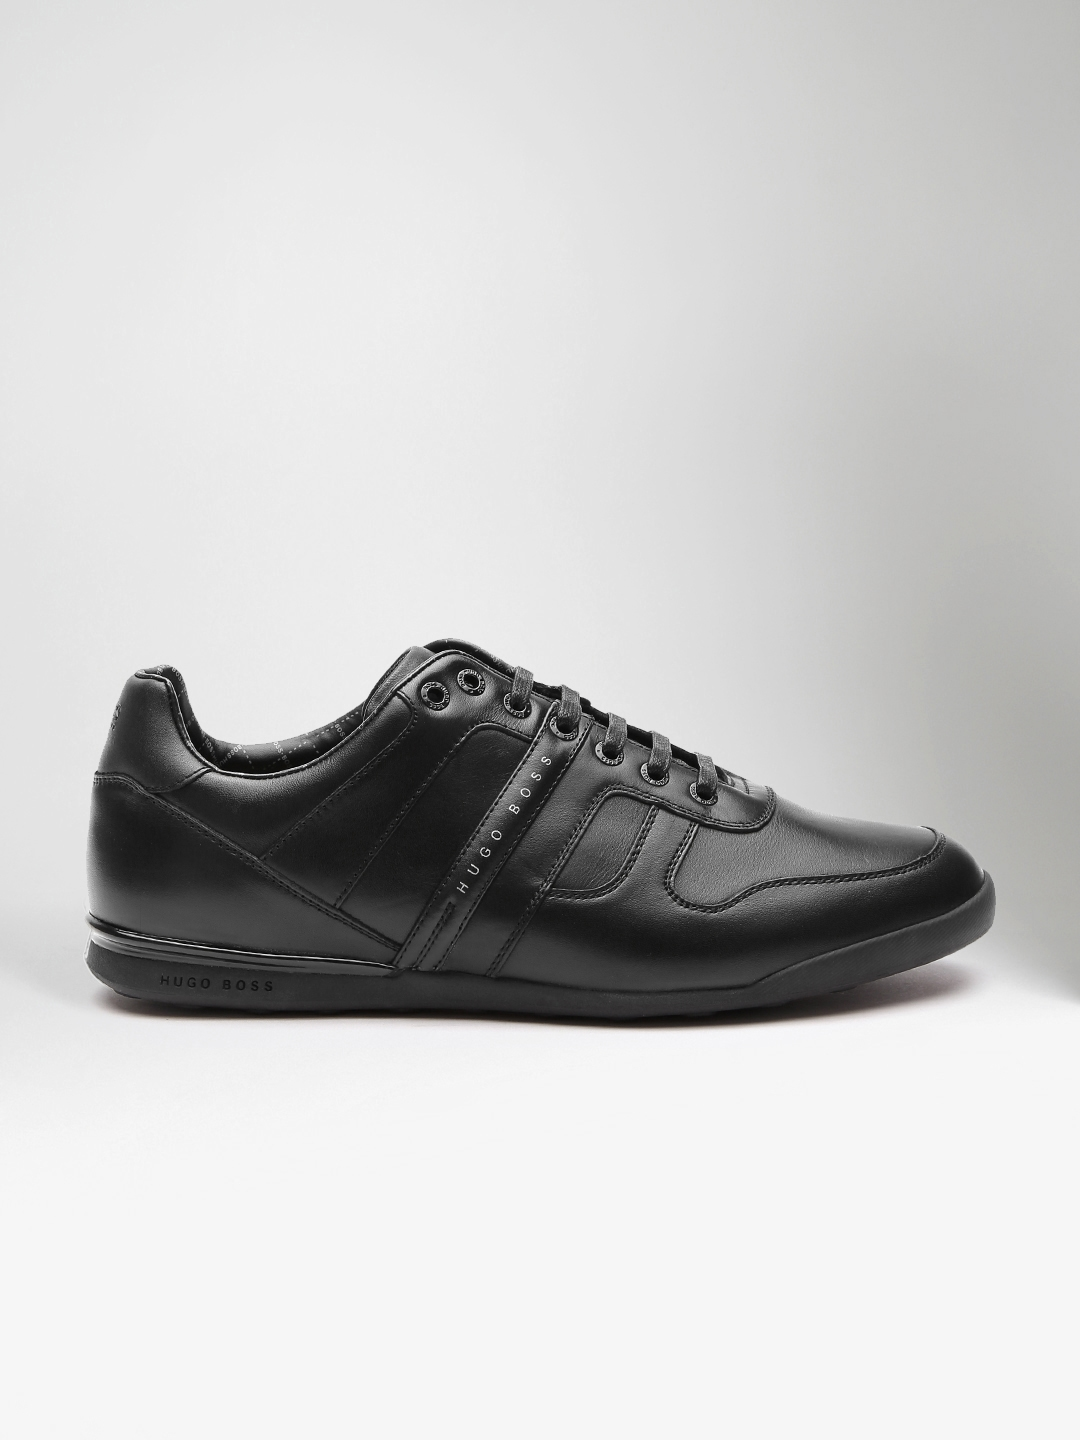 4a71eed29ba Buy BOSS Green Men Black Leather Sneakers - Casual Shoes for Men ...